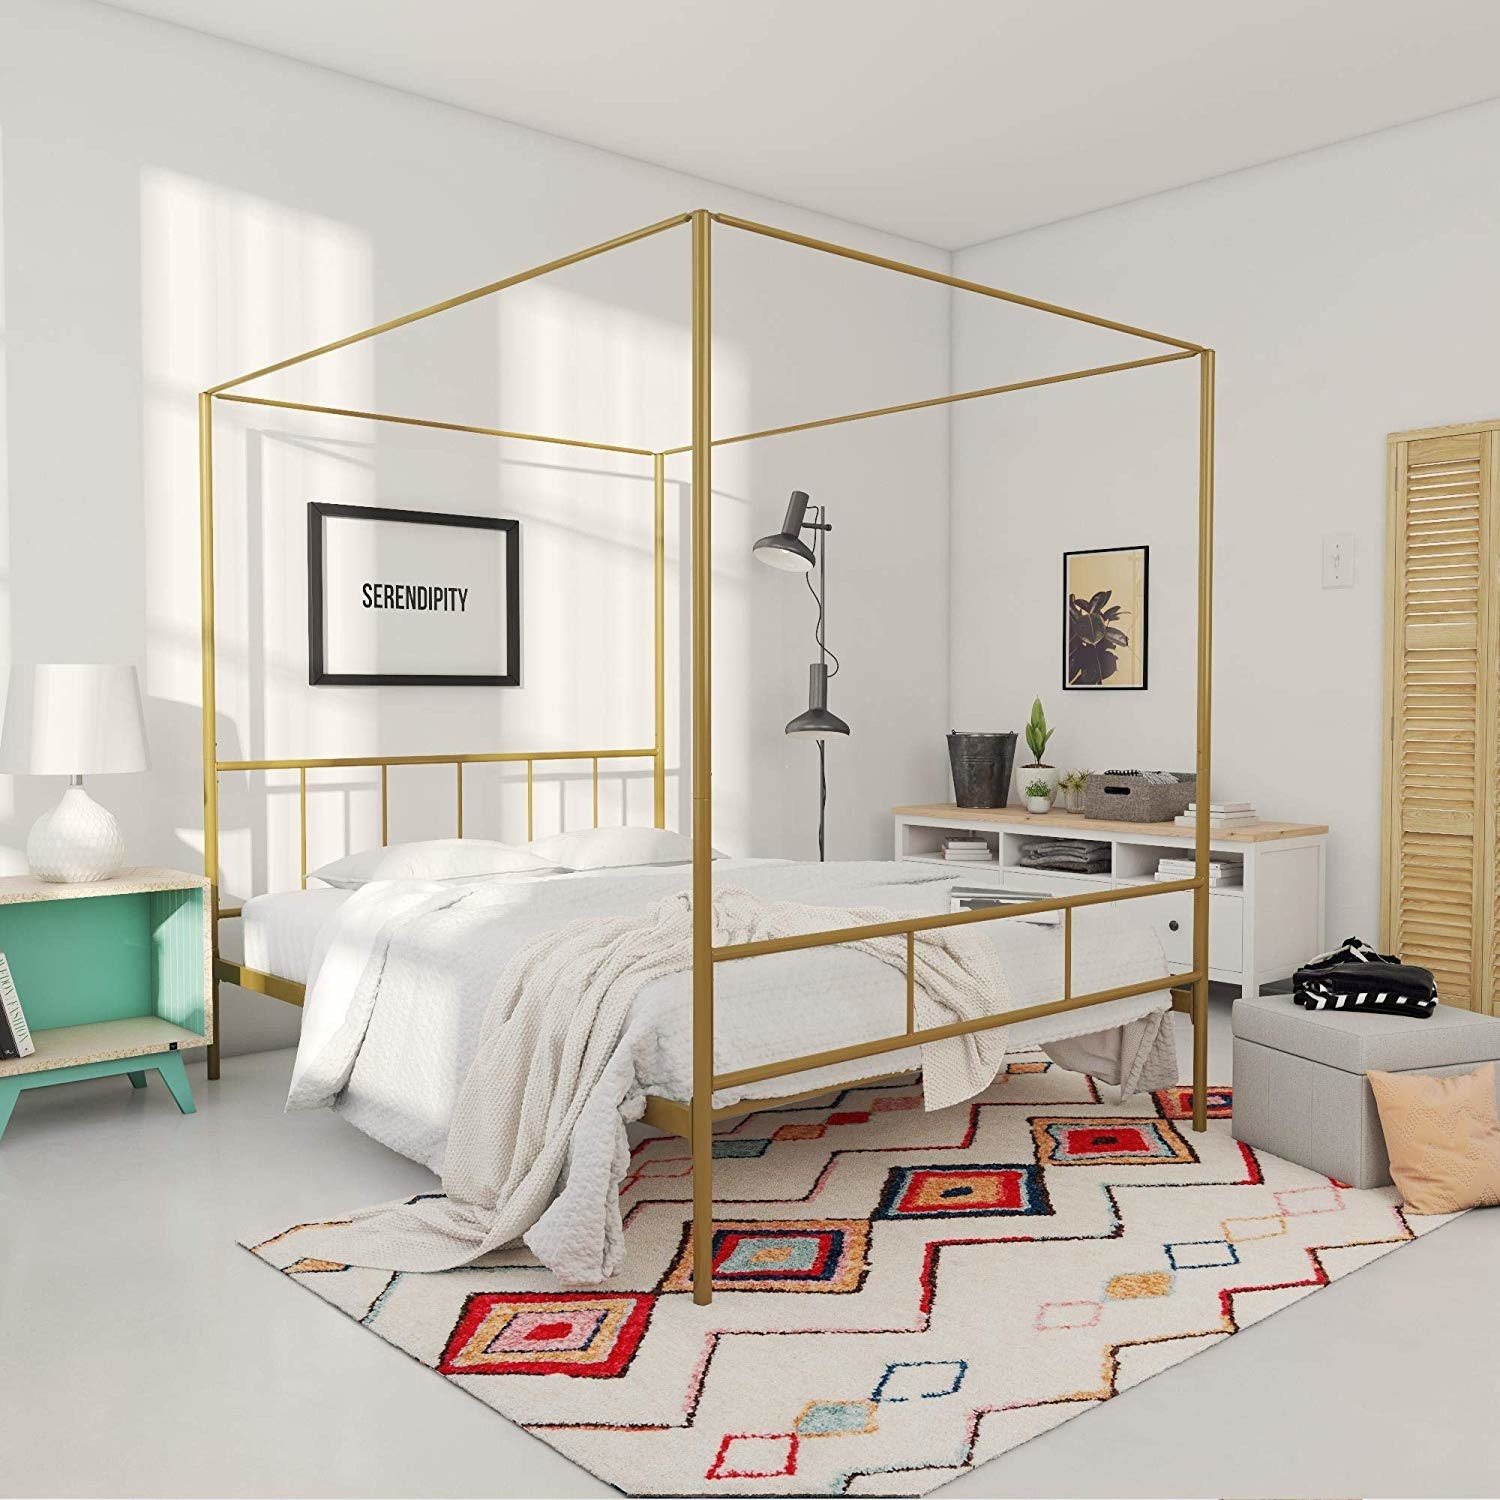 bedroom with gold tone canopy in squared off shape